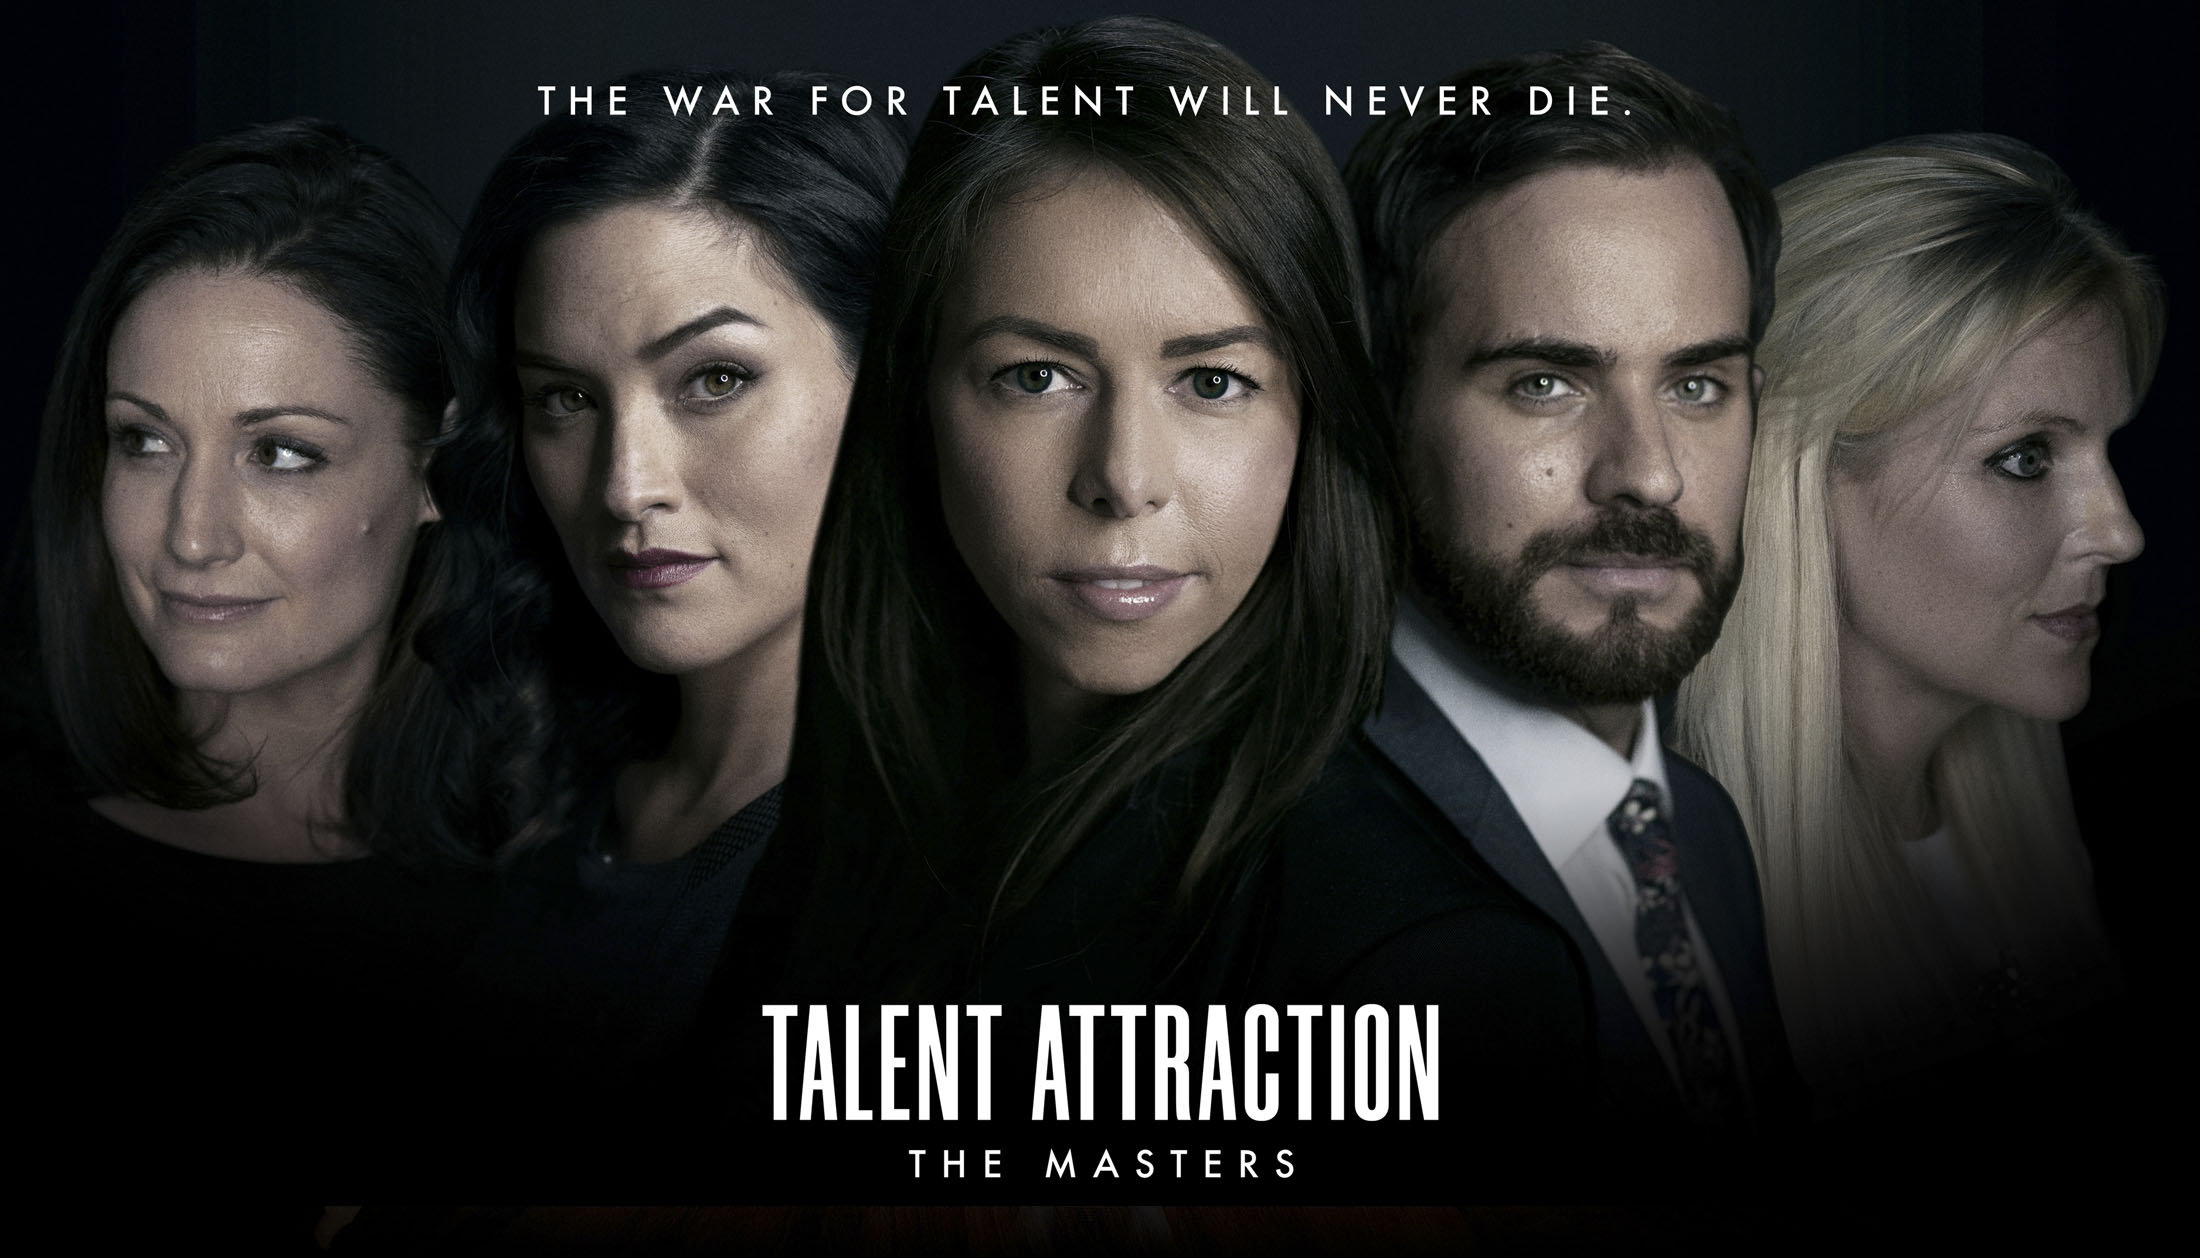 Talent Attraction, The Masters Summit